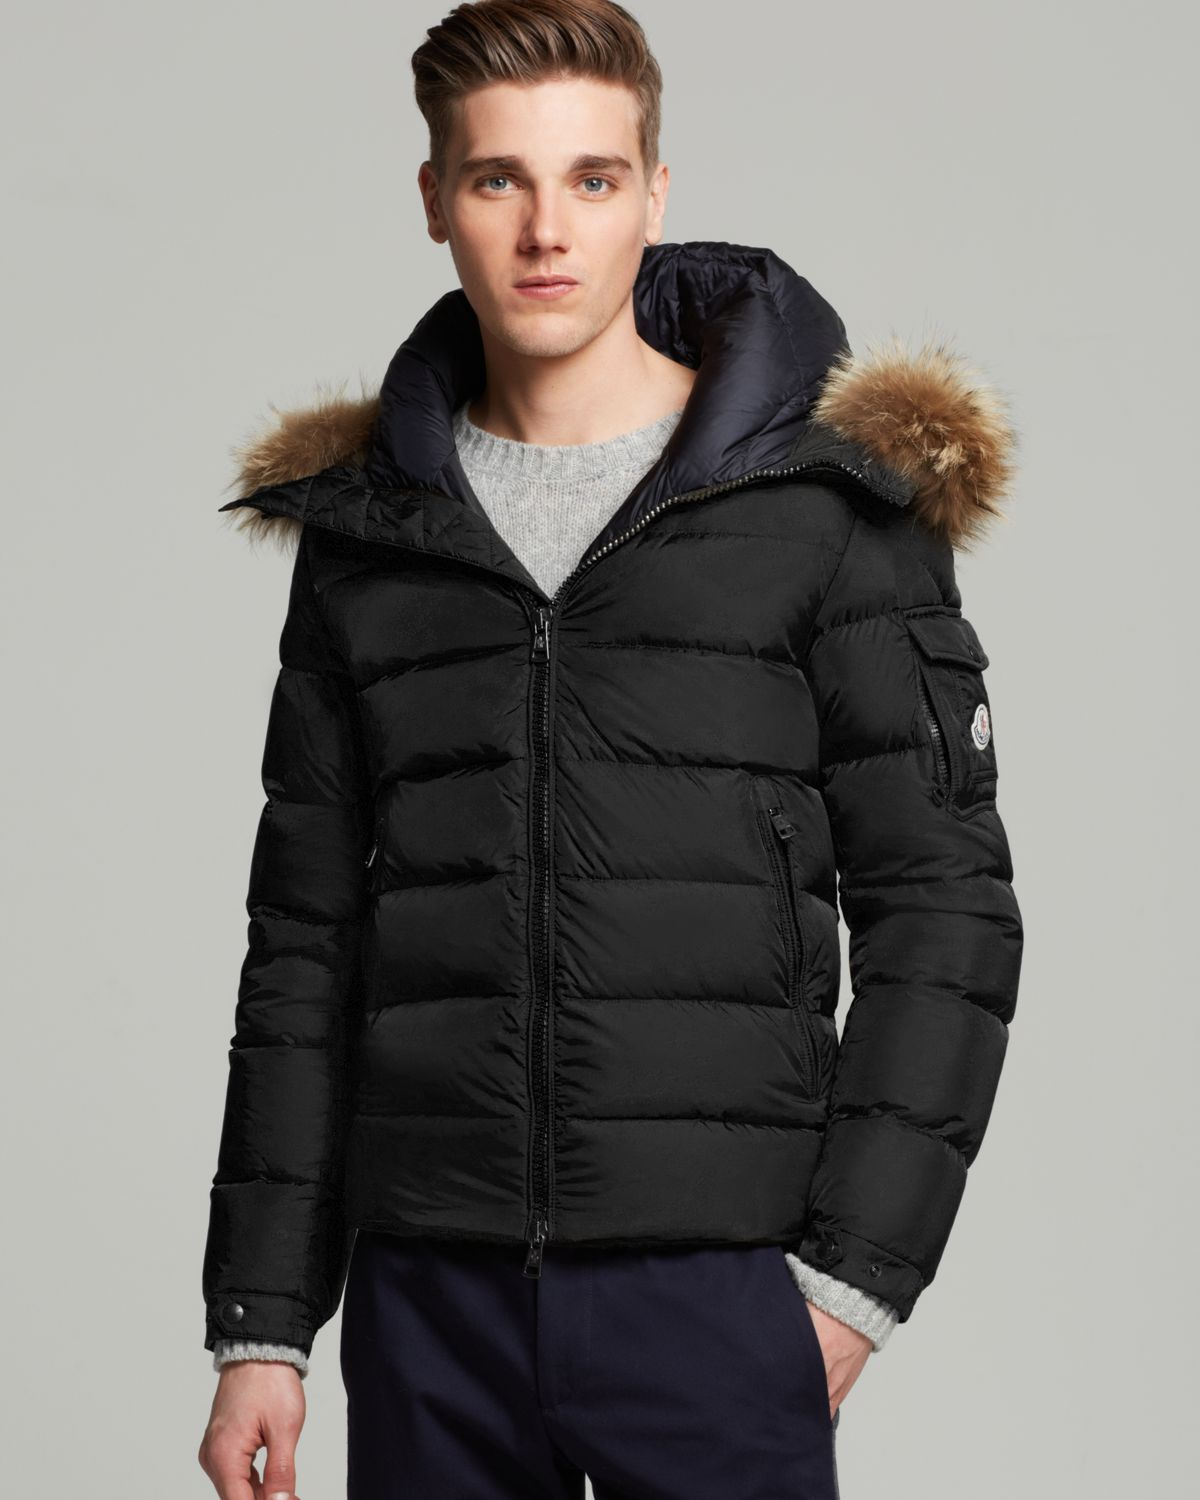 c90493808 coupon code for moncler mens jacket fur hood 58f54 a5a21